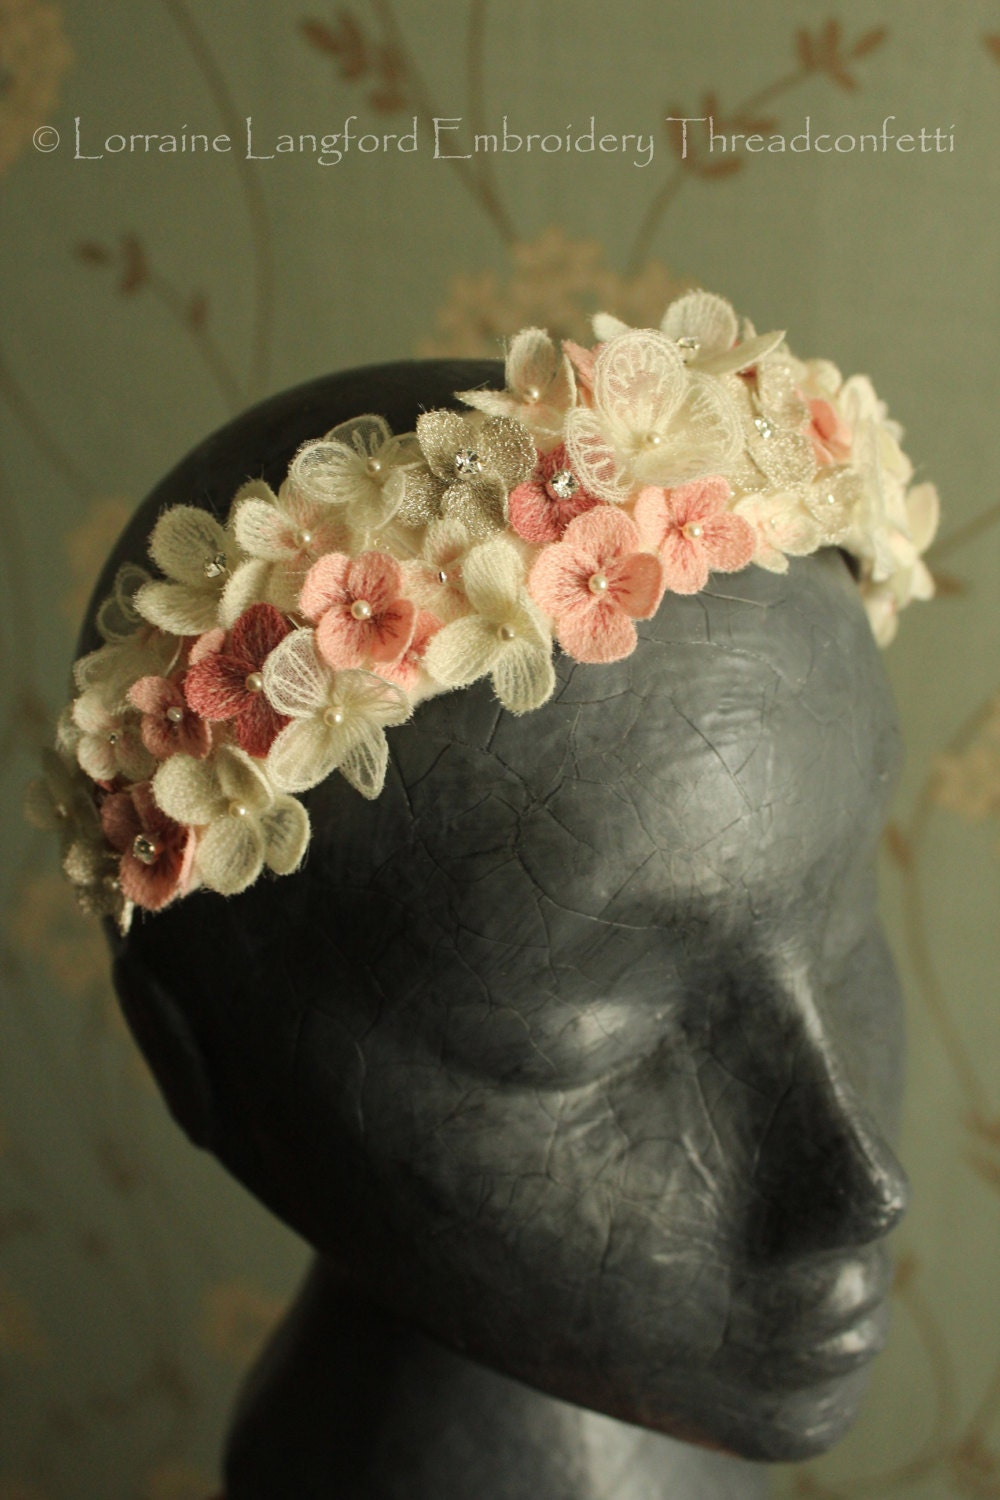 Vintage StyleBoho Style Bridal Floral Headdress Tiara Fascinator Adornment pink and silver embroidery threadconfetti flower blossoms